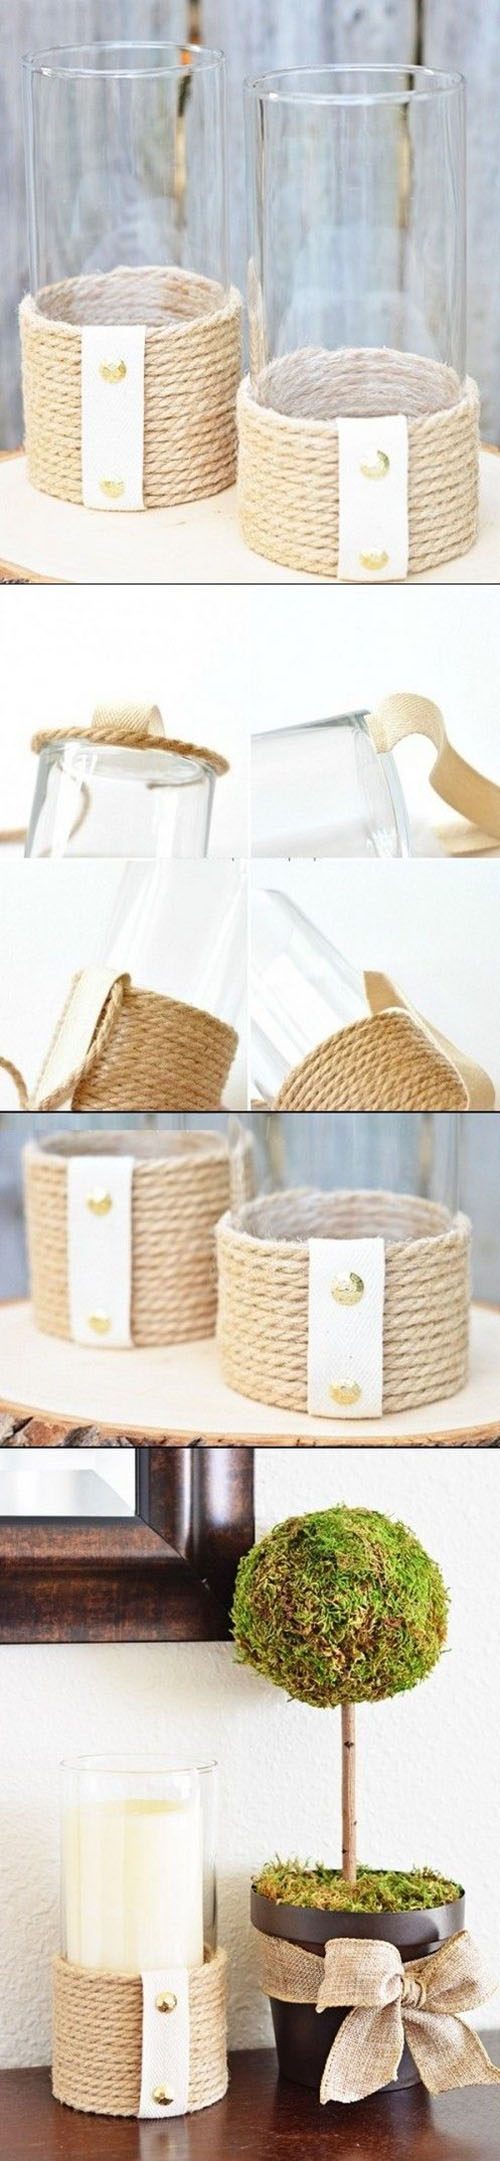 DIY Candle Holders ideas11